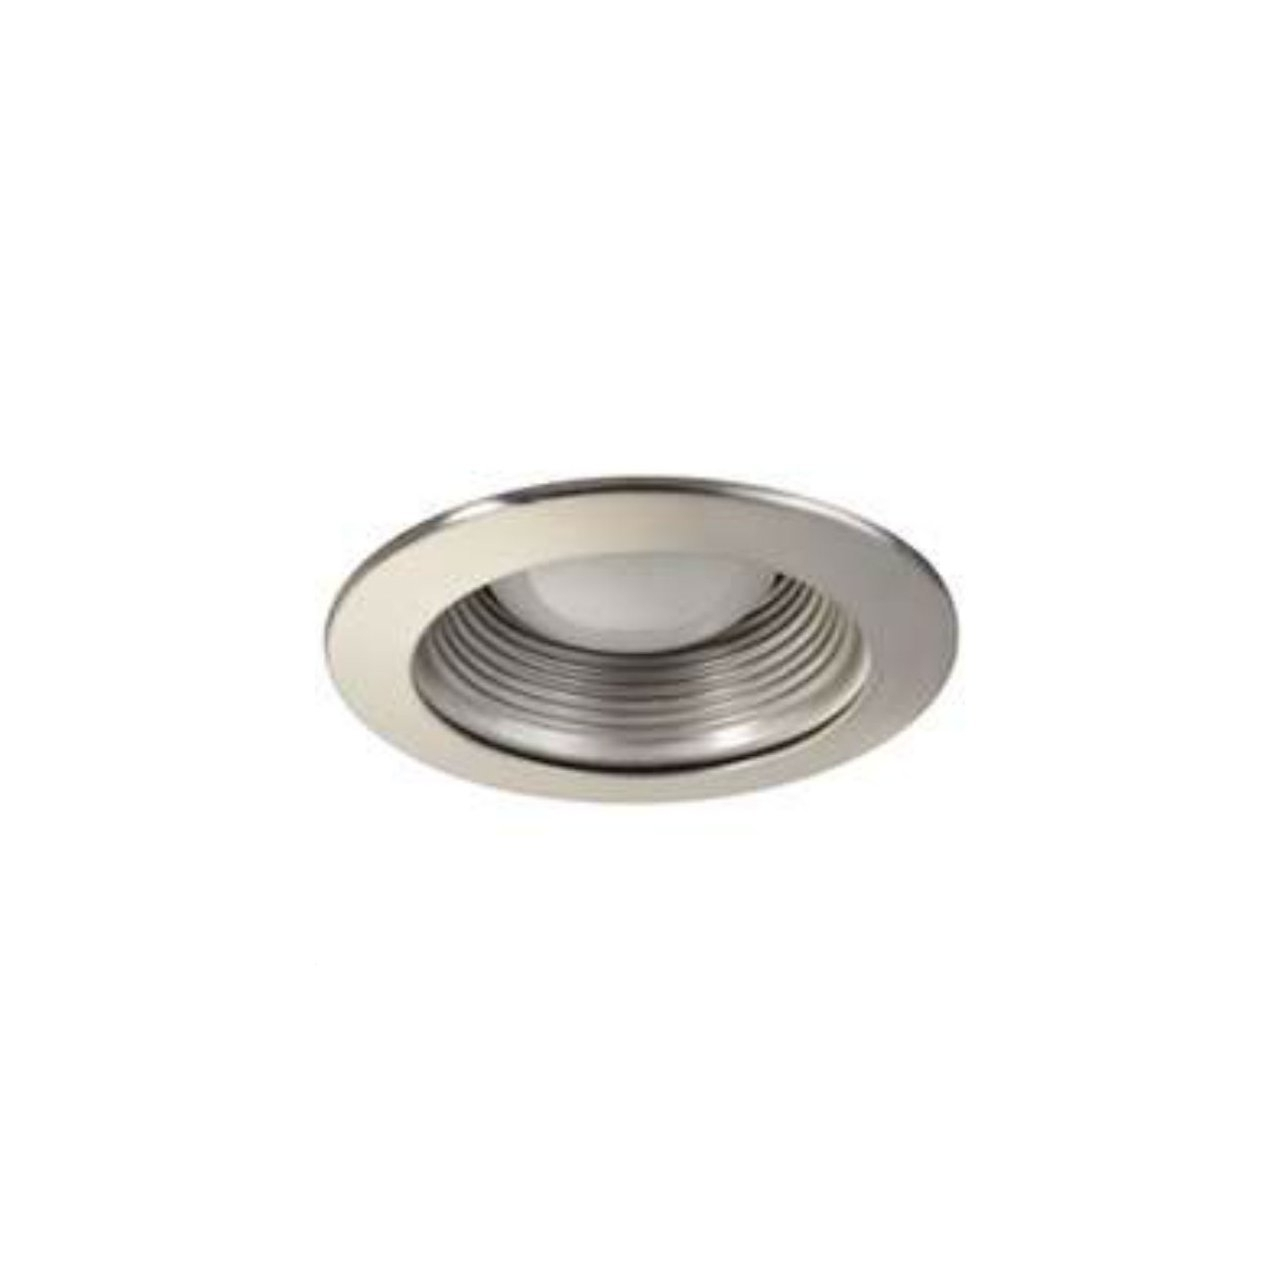 Outdoor Recessed Can Lights • Outdoor Lighting With Regard To Most Recent Outdoor Recessed Ceiling Lights (View 13 of 20)